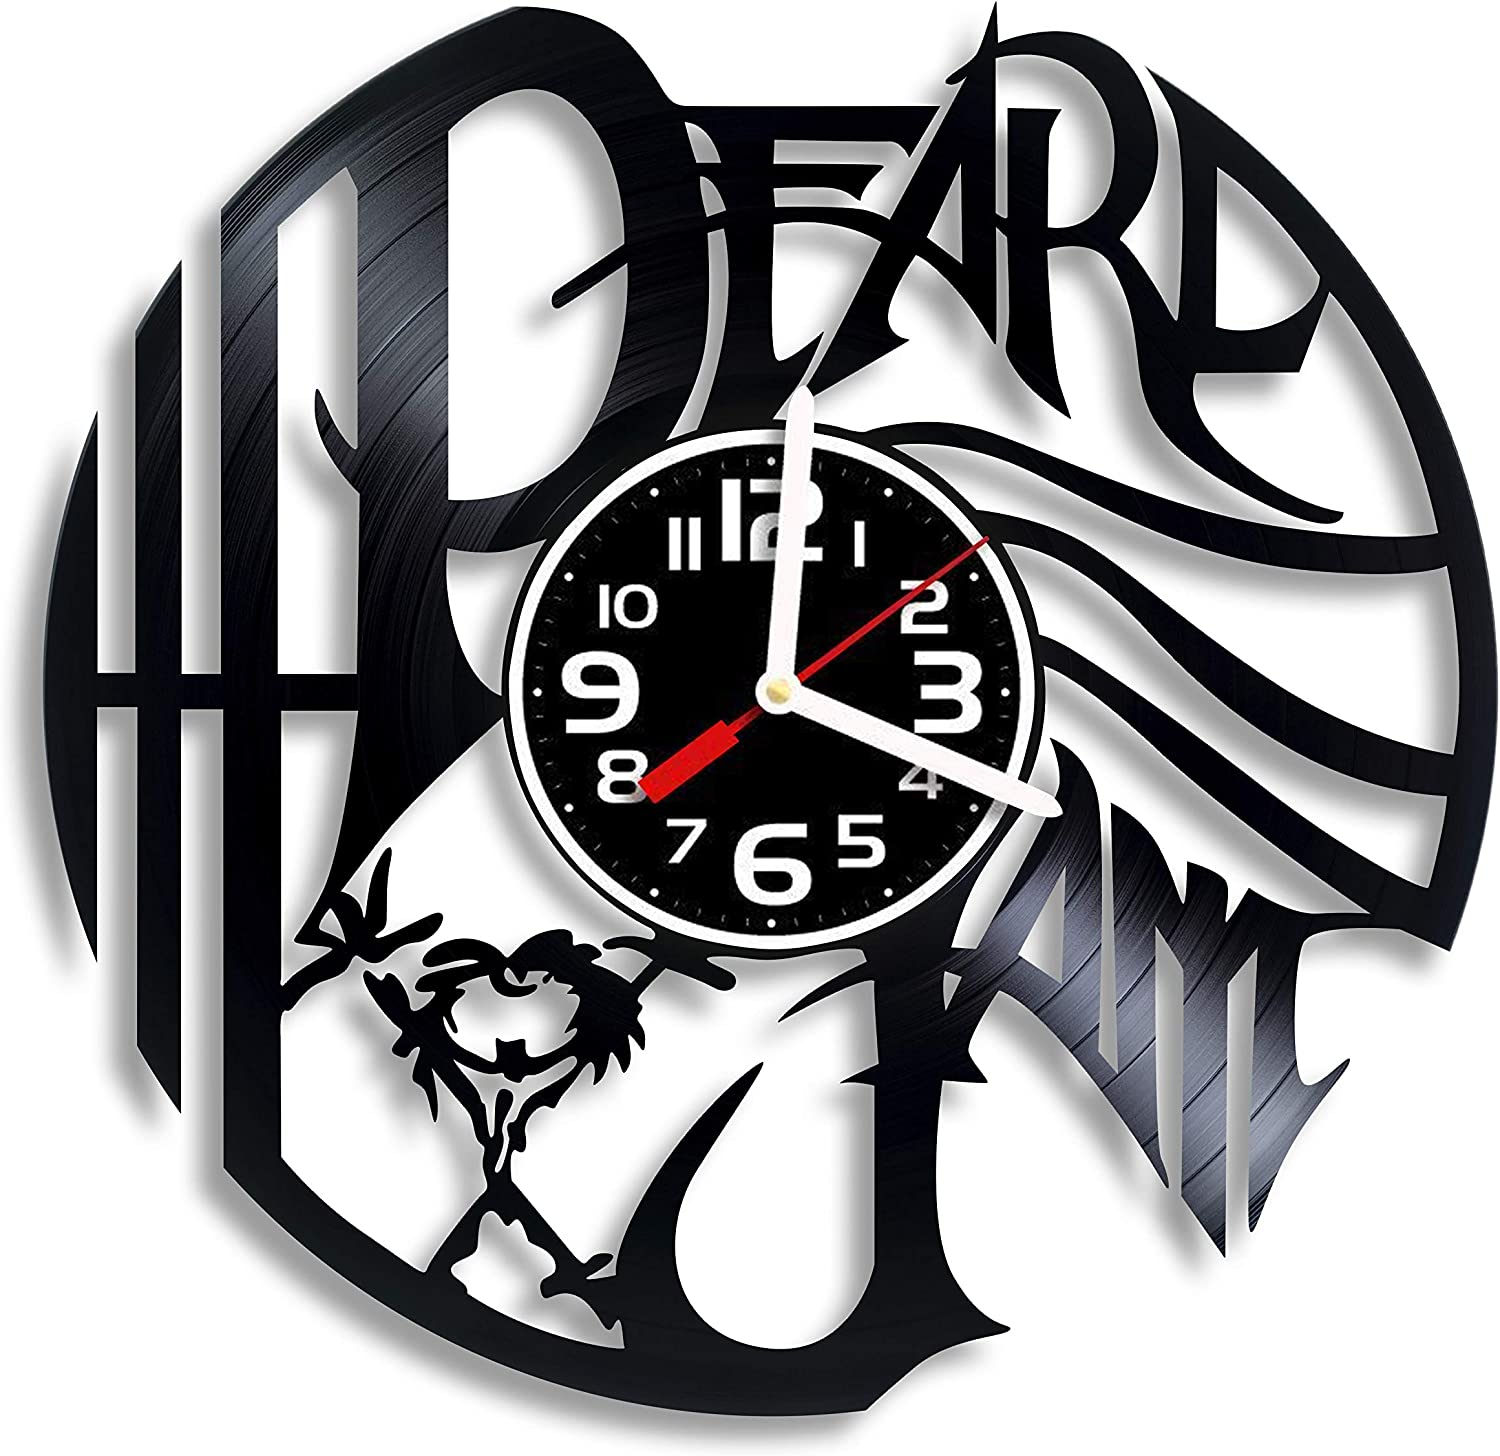 Luchko Decor Complicatible with Pearl Jam Vinyl Wall Clock, Pearl Jam Gift for Any Occasion, Christmas, Birthday, Holiday, Housewarming Present